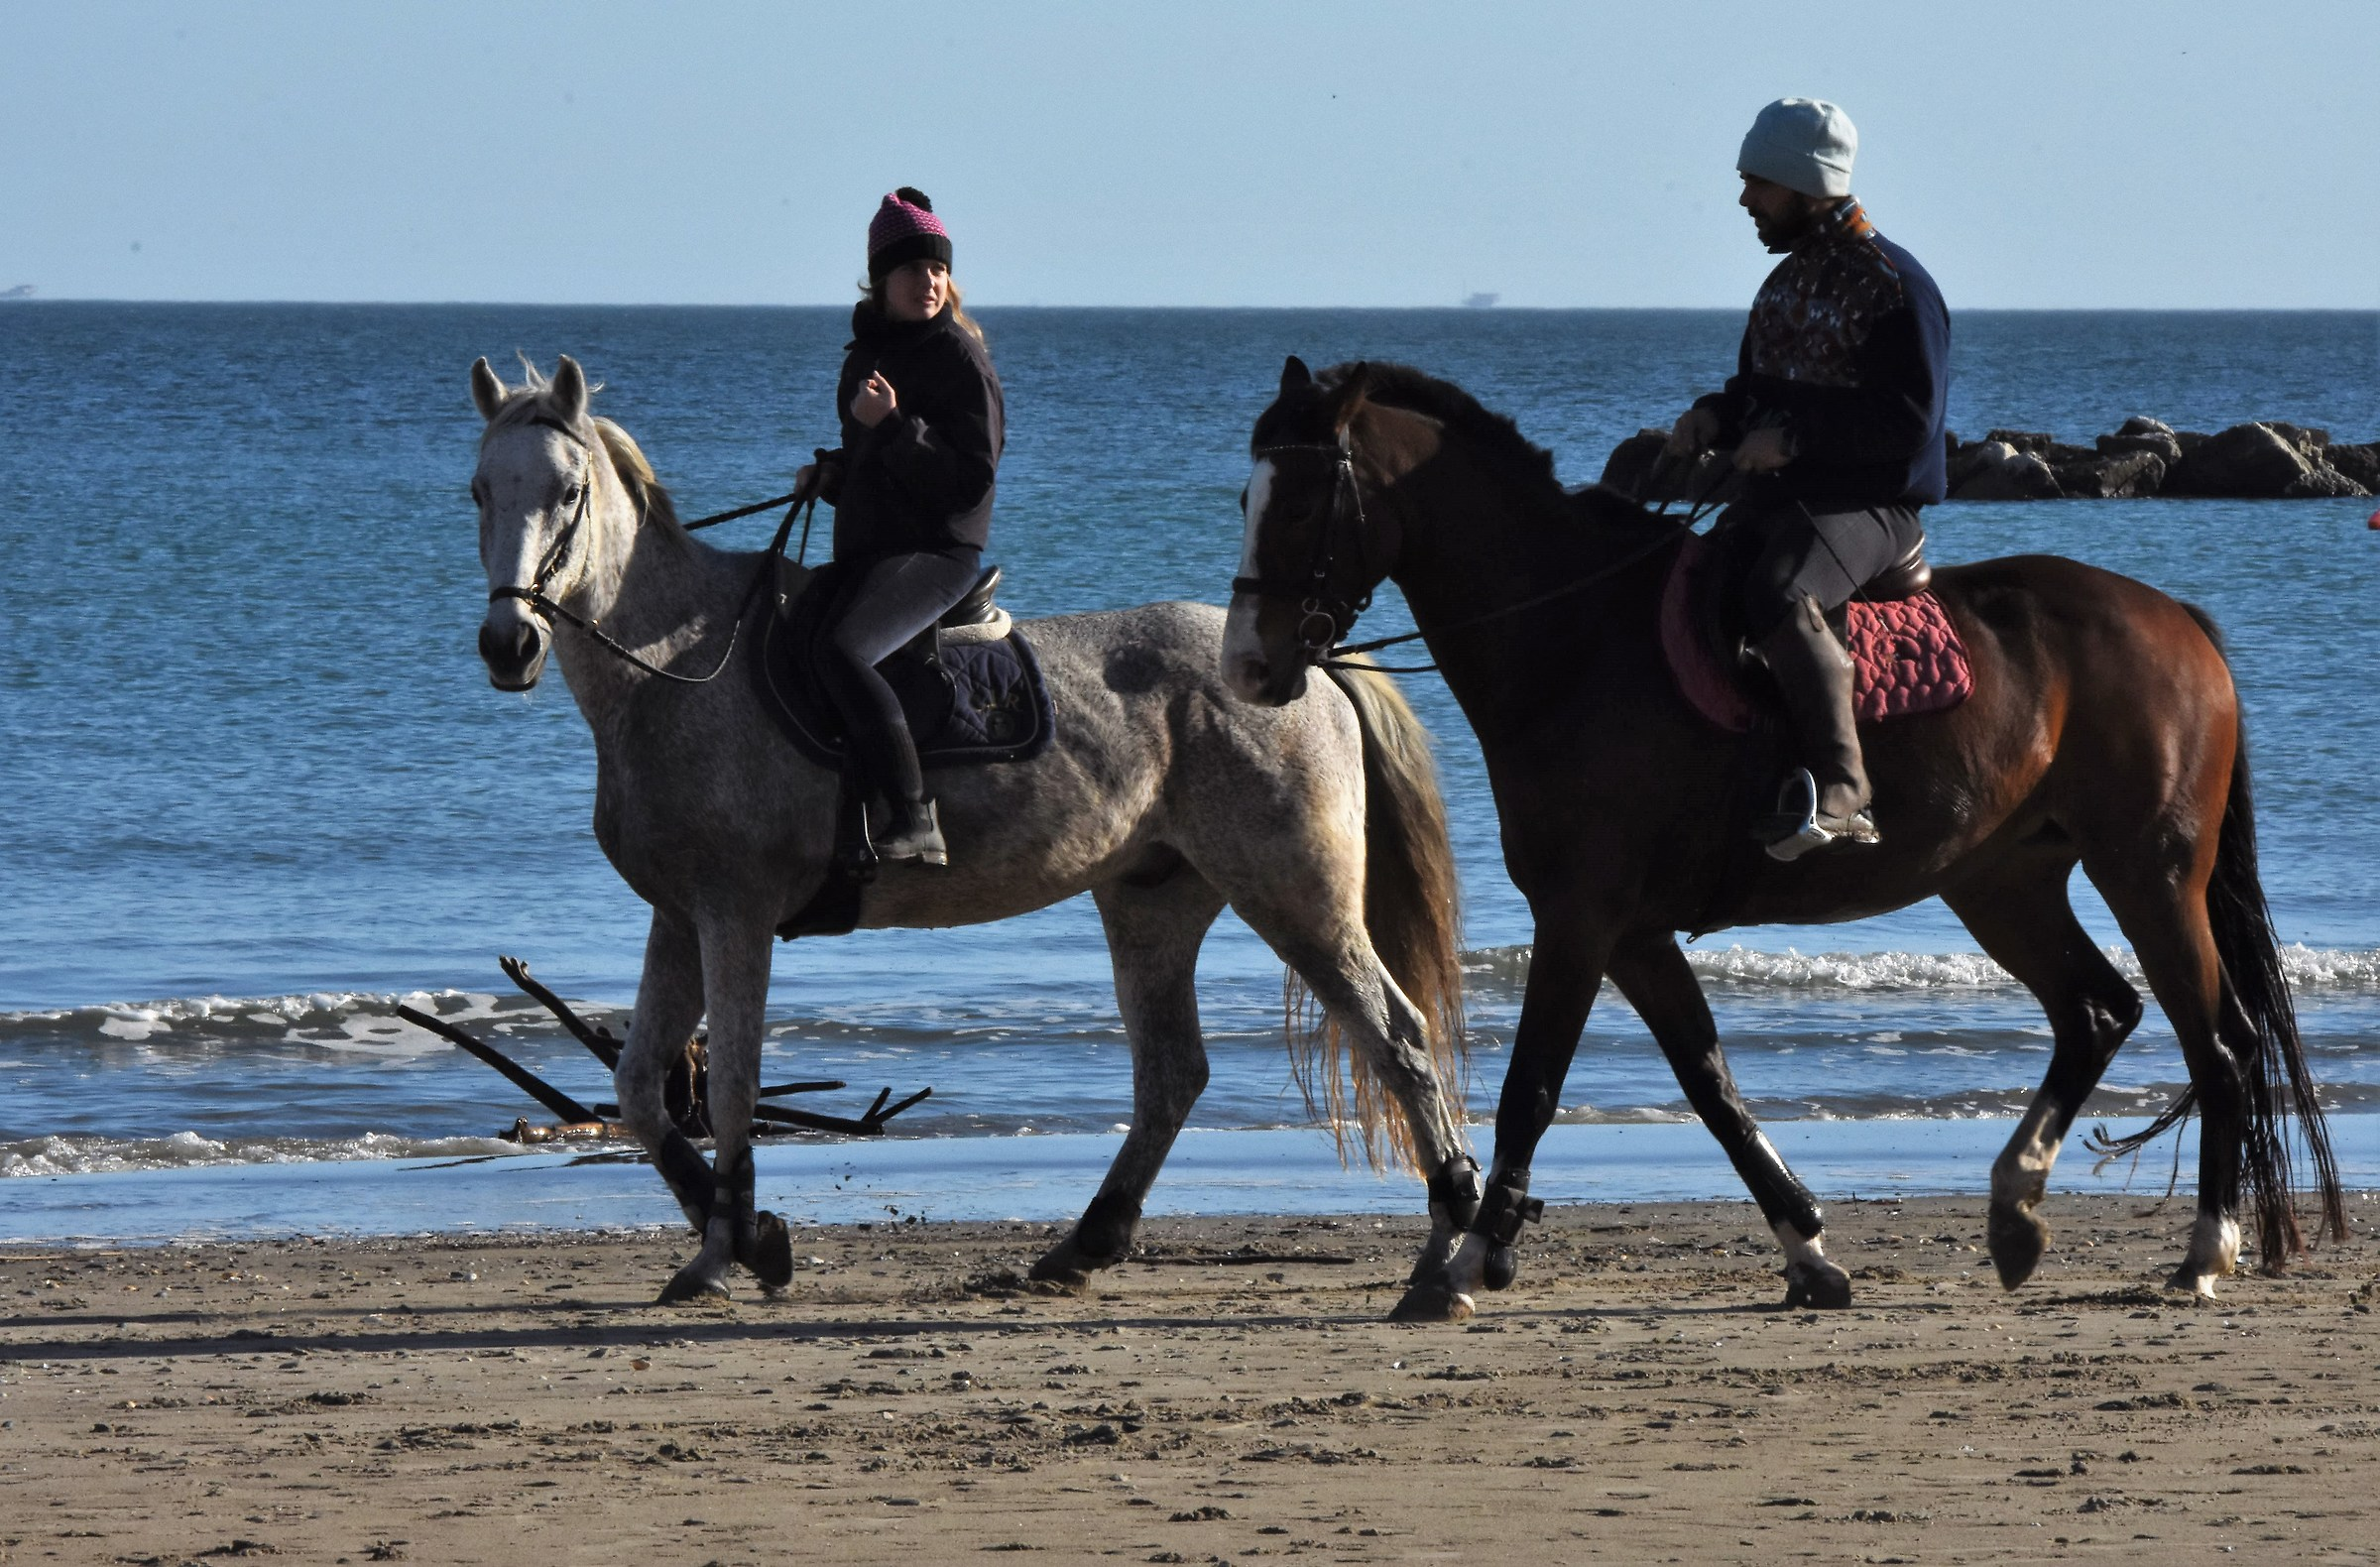 At sea I saw the horses.... and not the surf!! ...